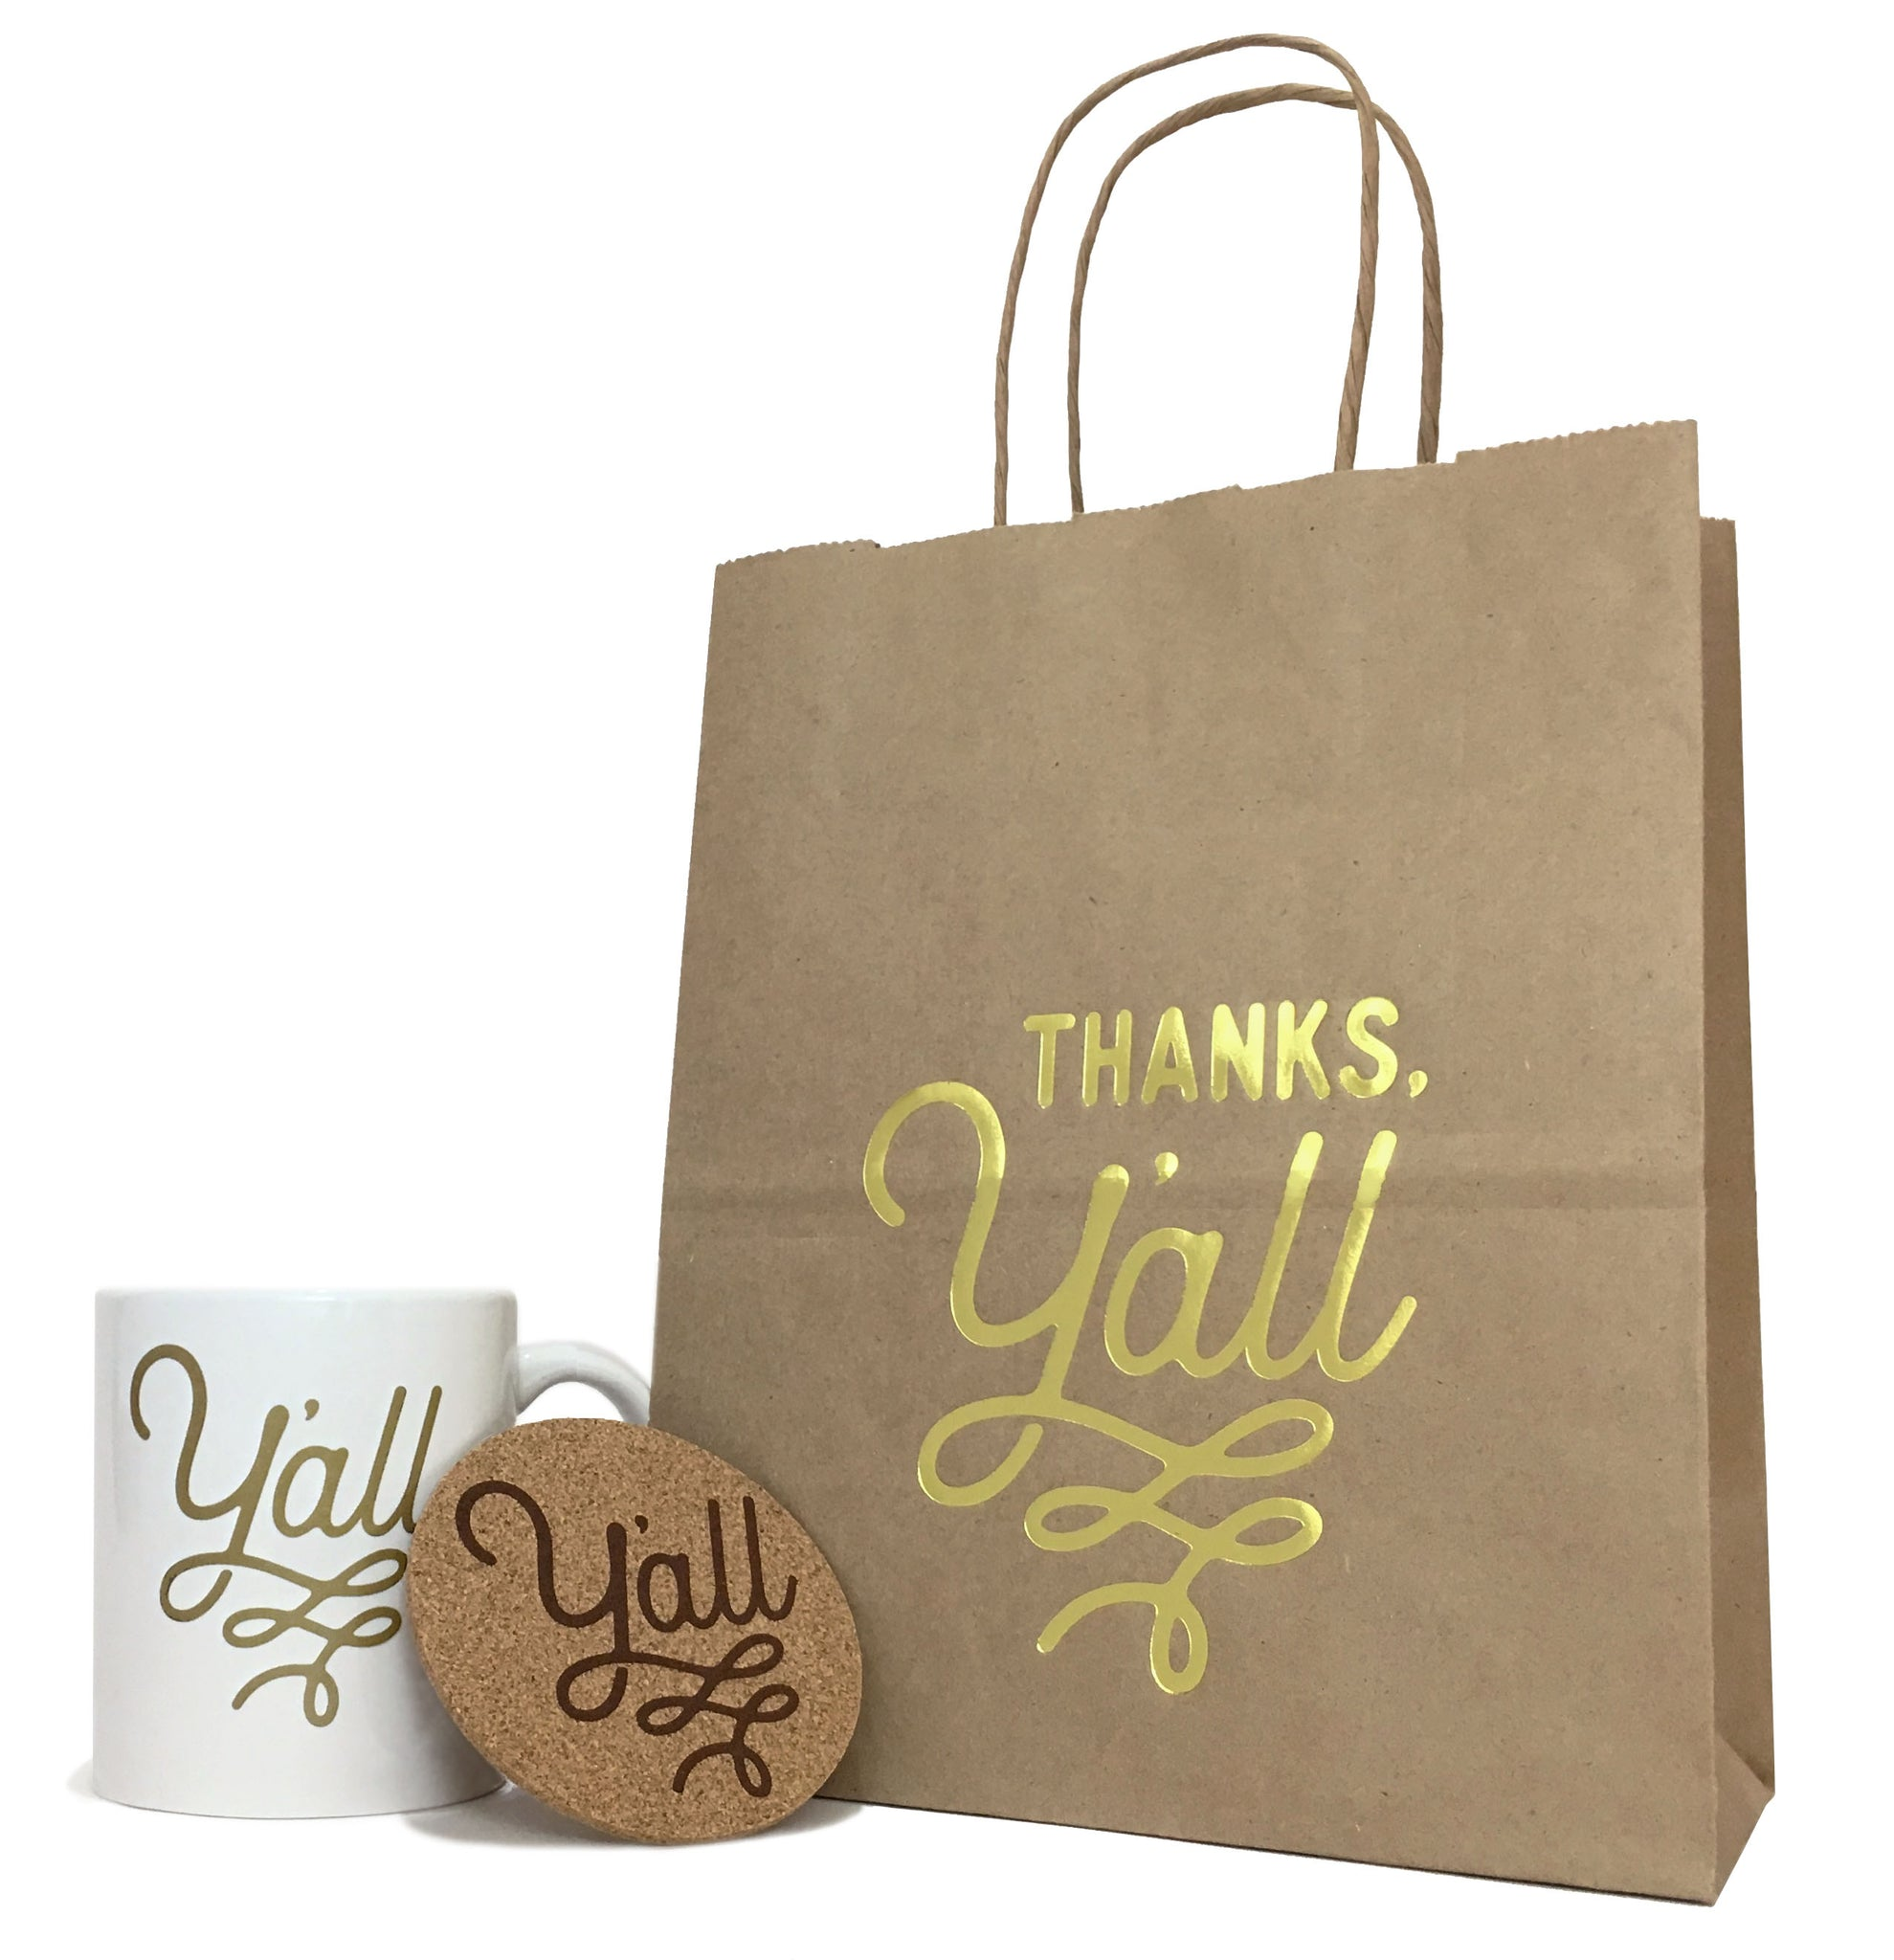 Thank You Gifts At Weddings: Thank You Gift Bag In Kraft